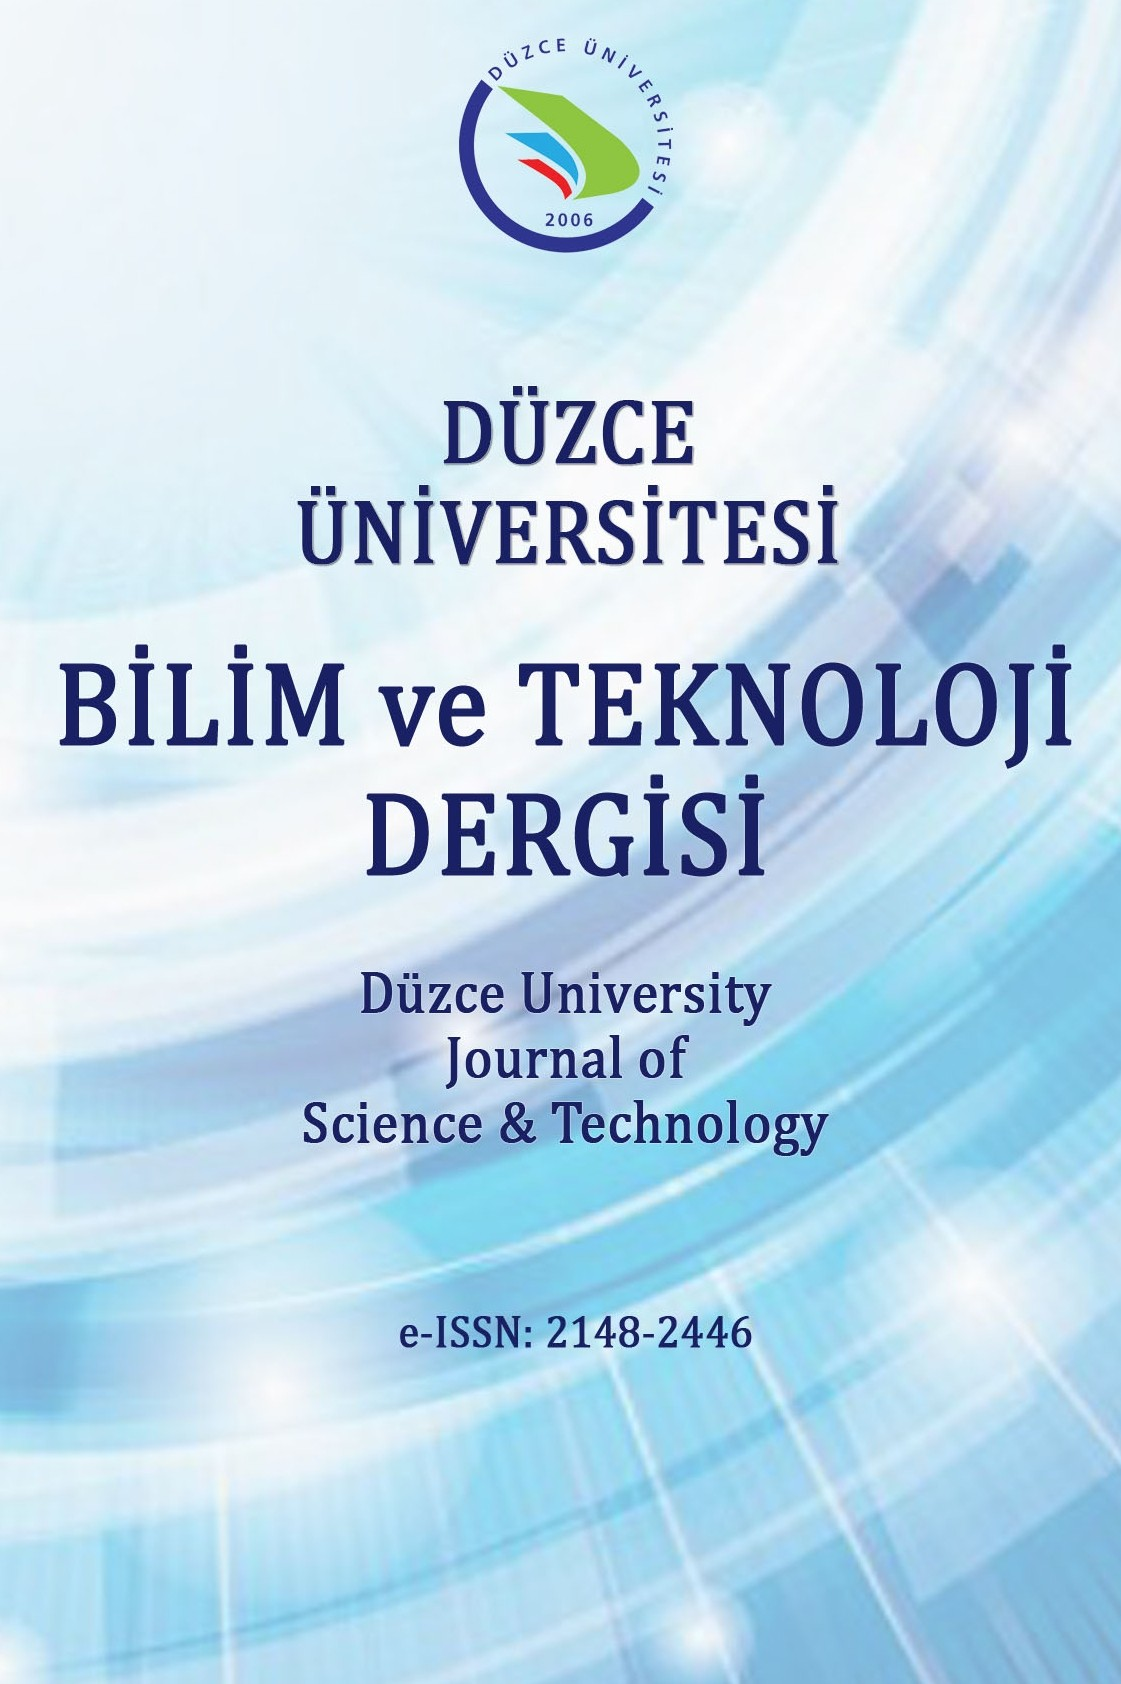 Duzce University Journal of Science and Technology